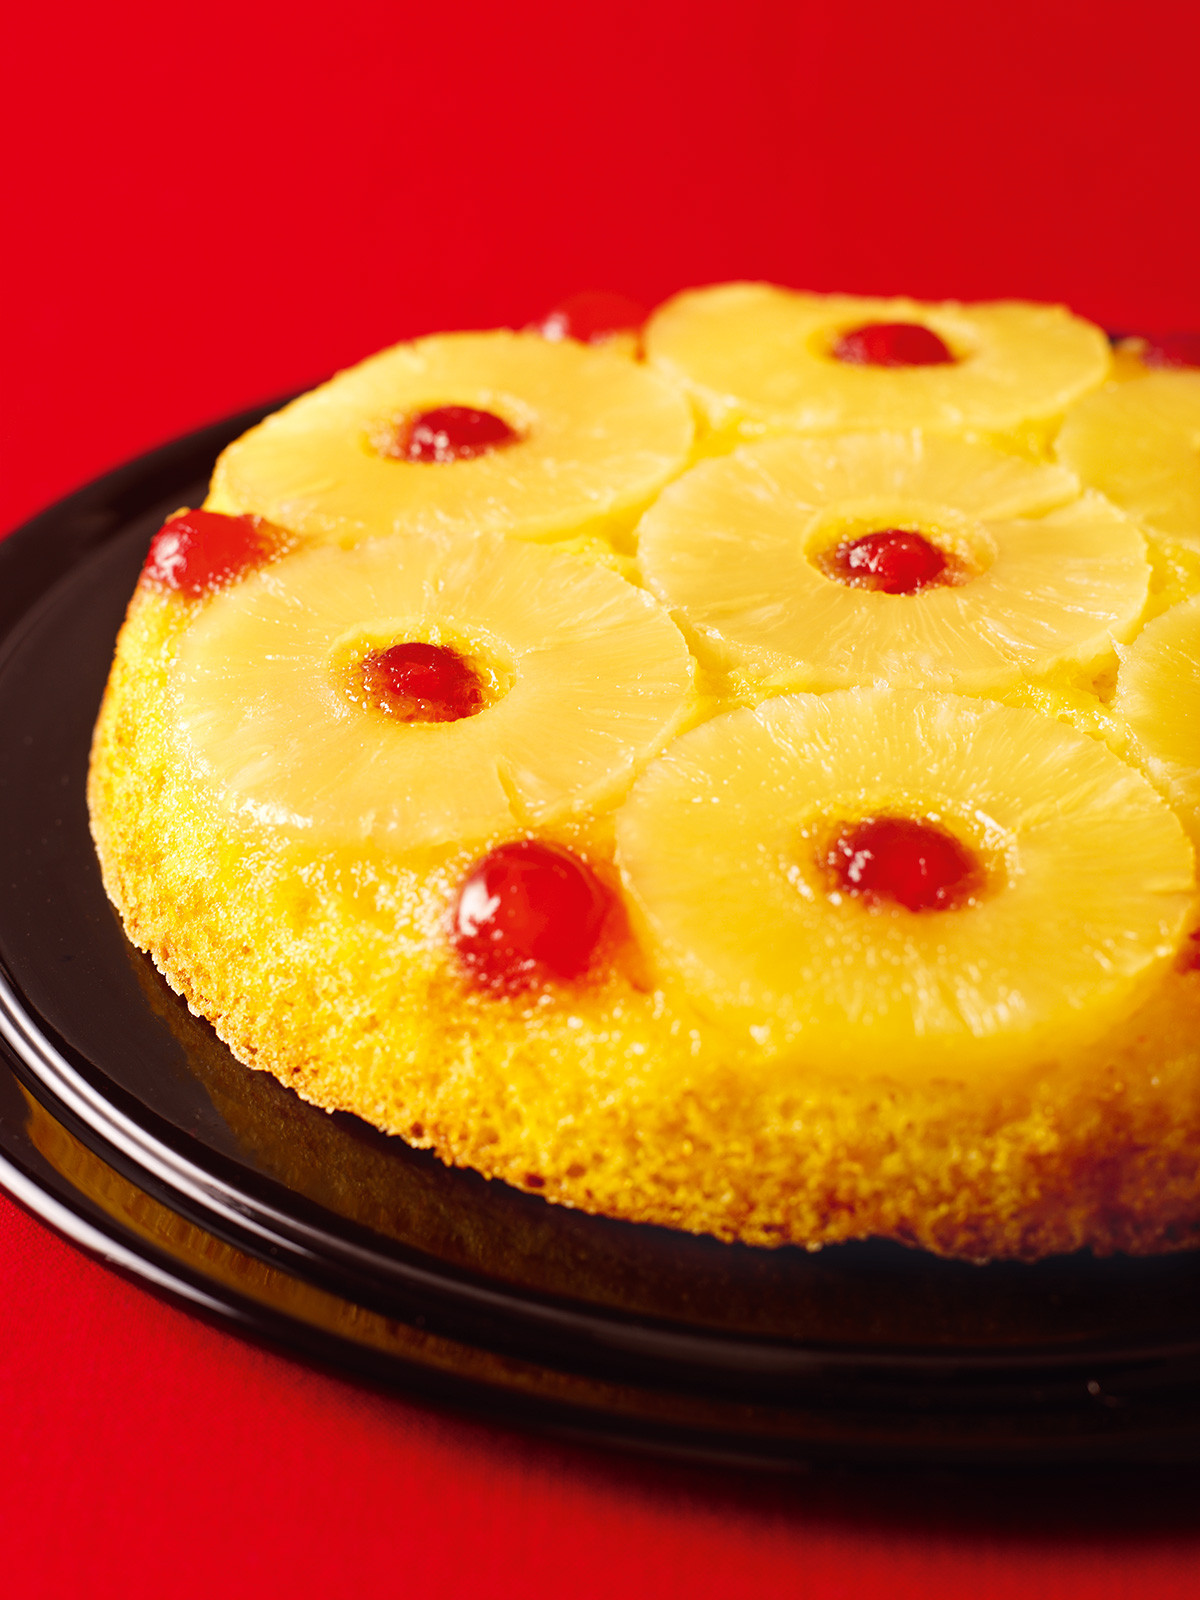 How To Make Pineapple Upside Down Cake  Pineapple Upside Down Cake Nigella s Recipes